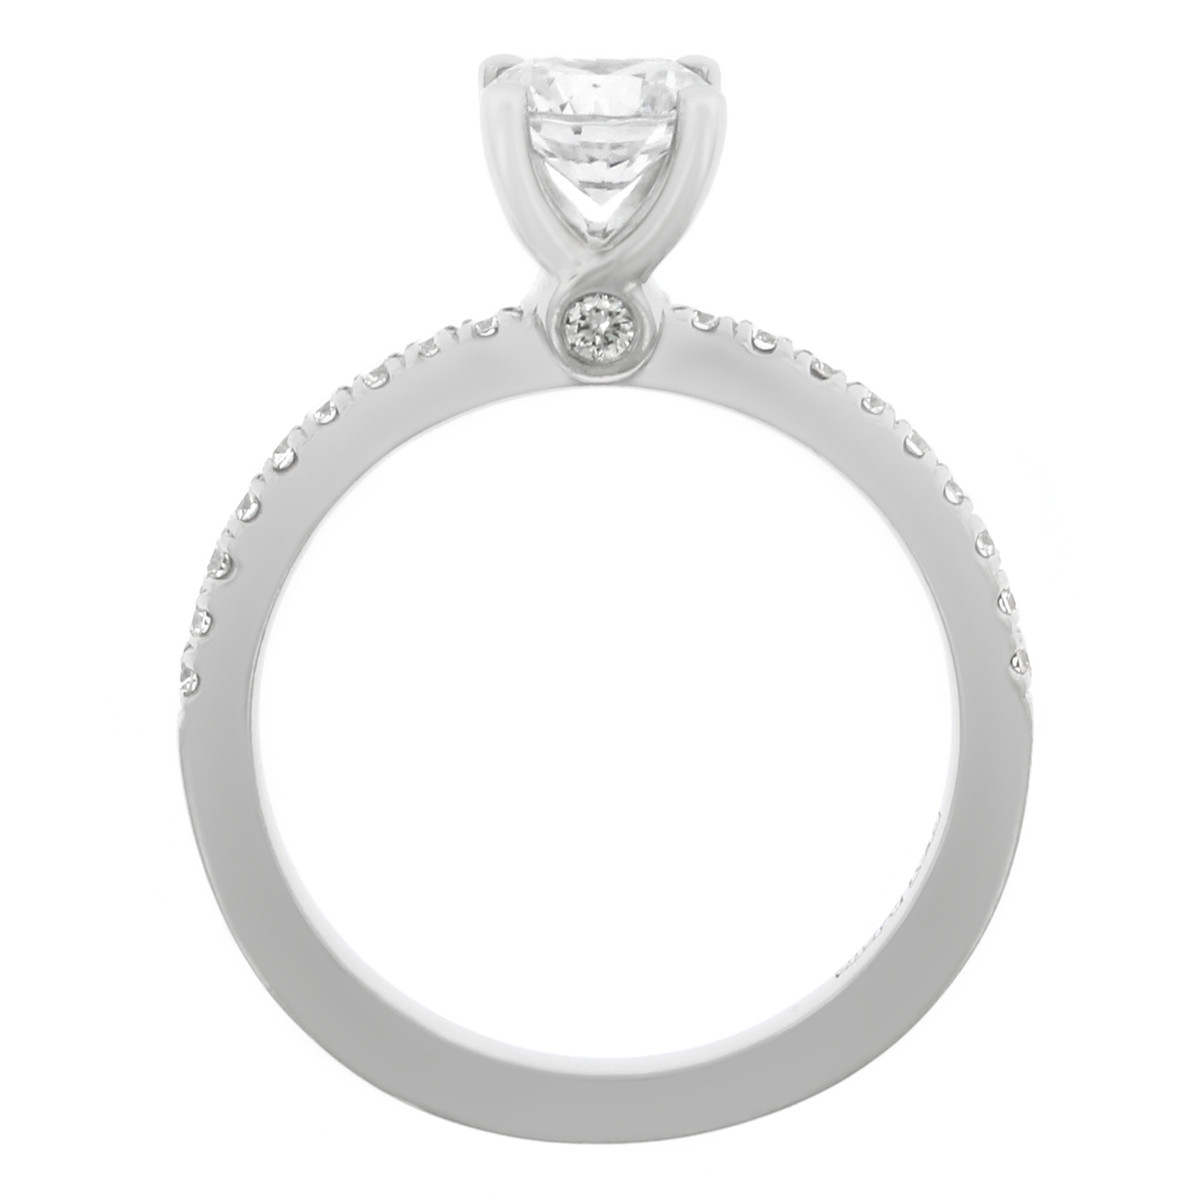 Platinum_Four_Prong_Pave_Diamond_Engagement_Ring_with_Surprise_Diamonds.jpg